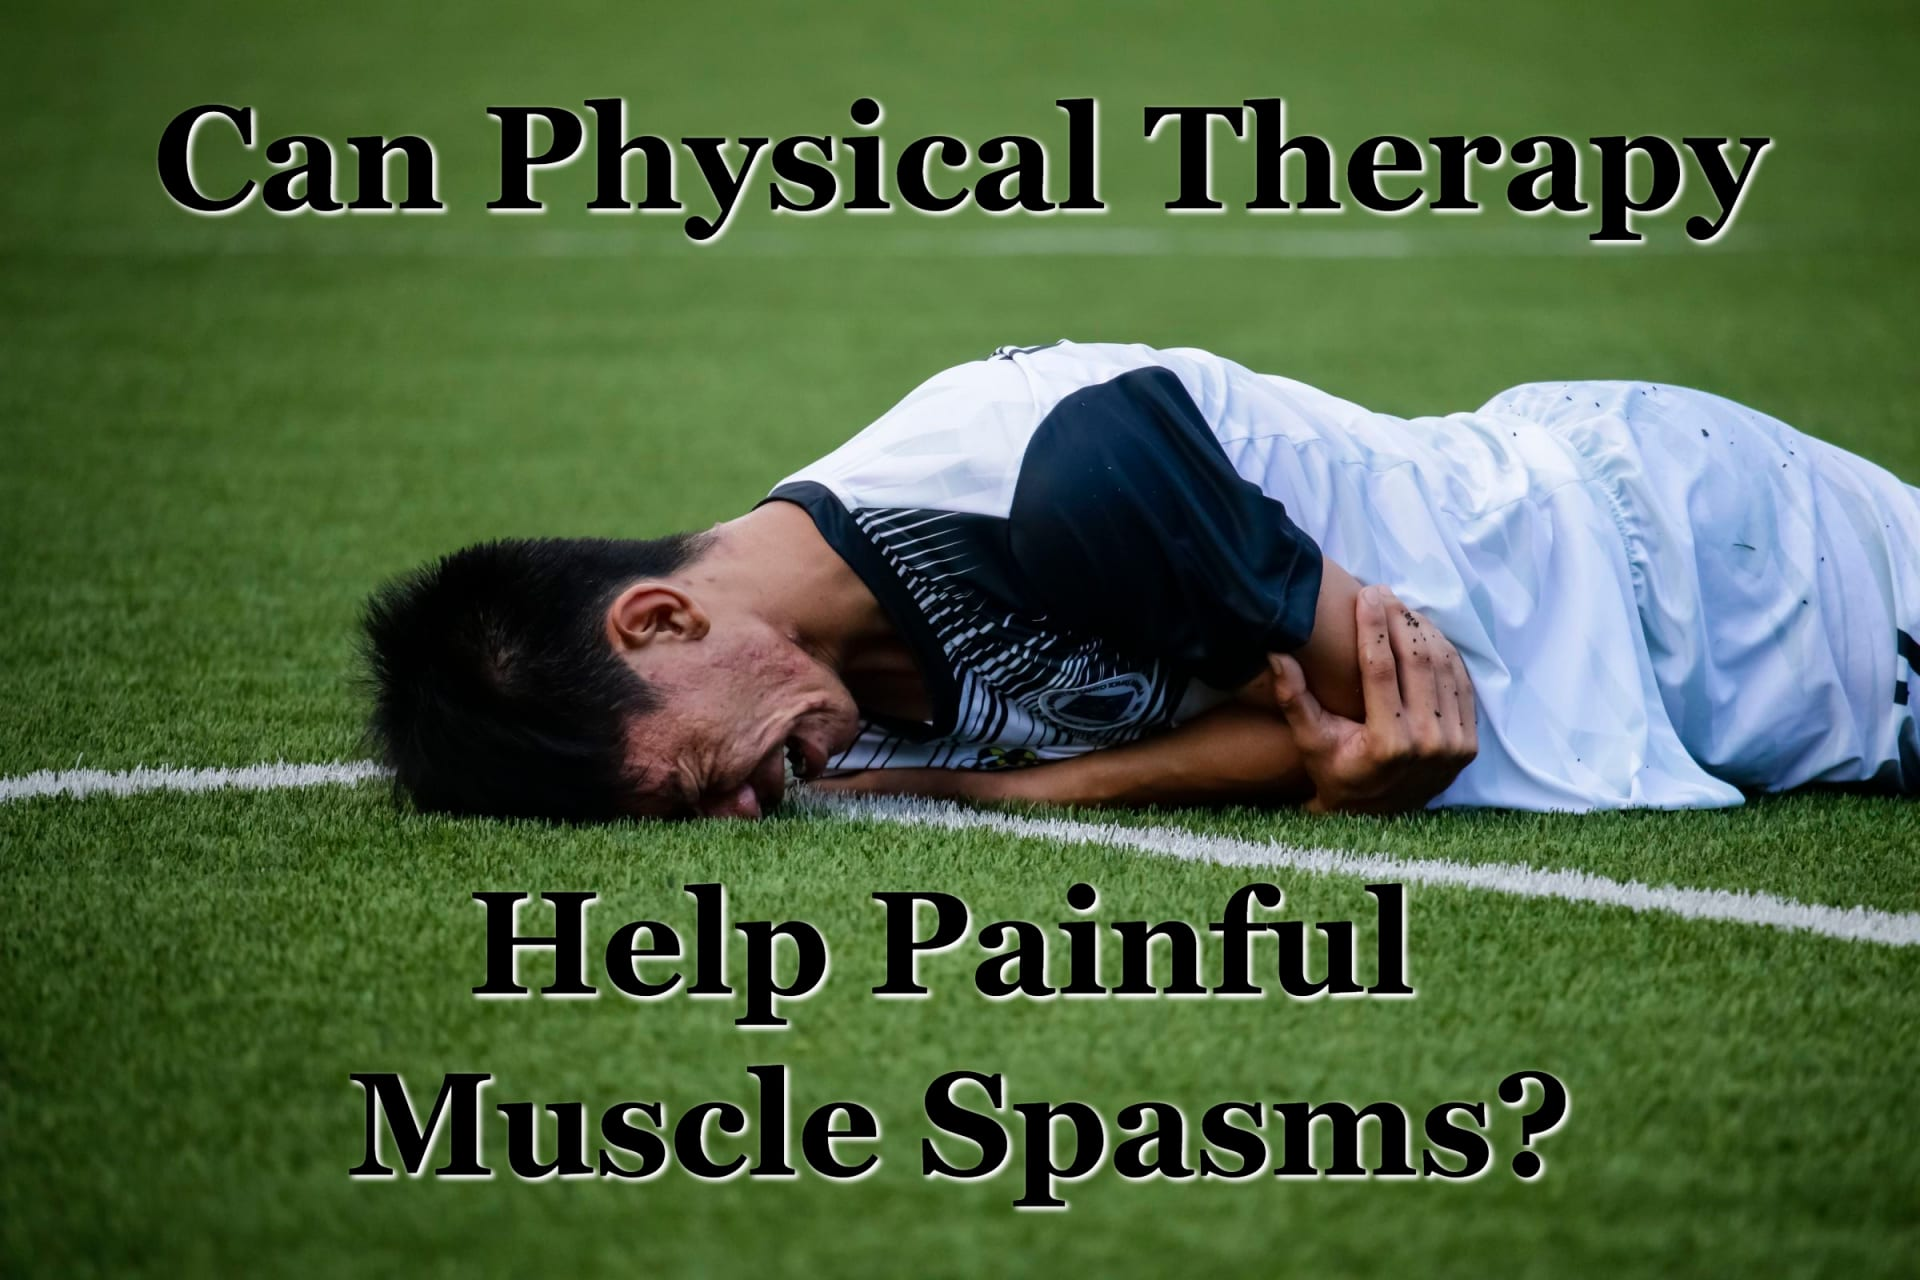 A soccer player suffering painful muscle spasms